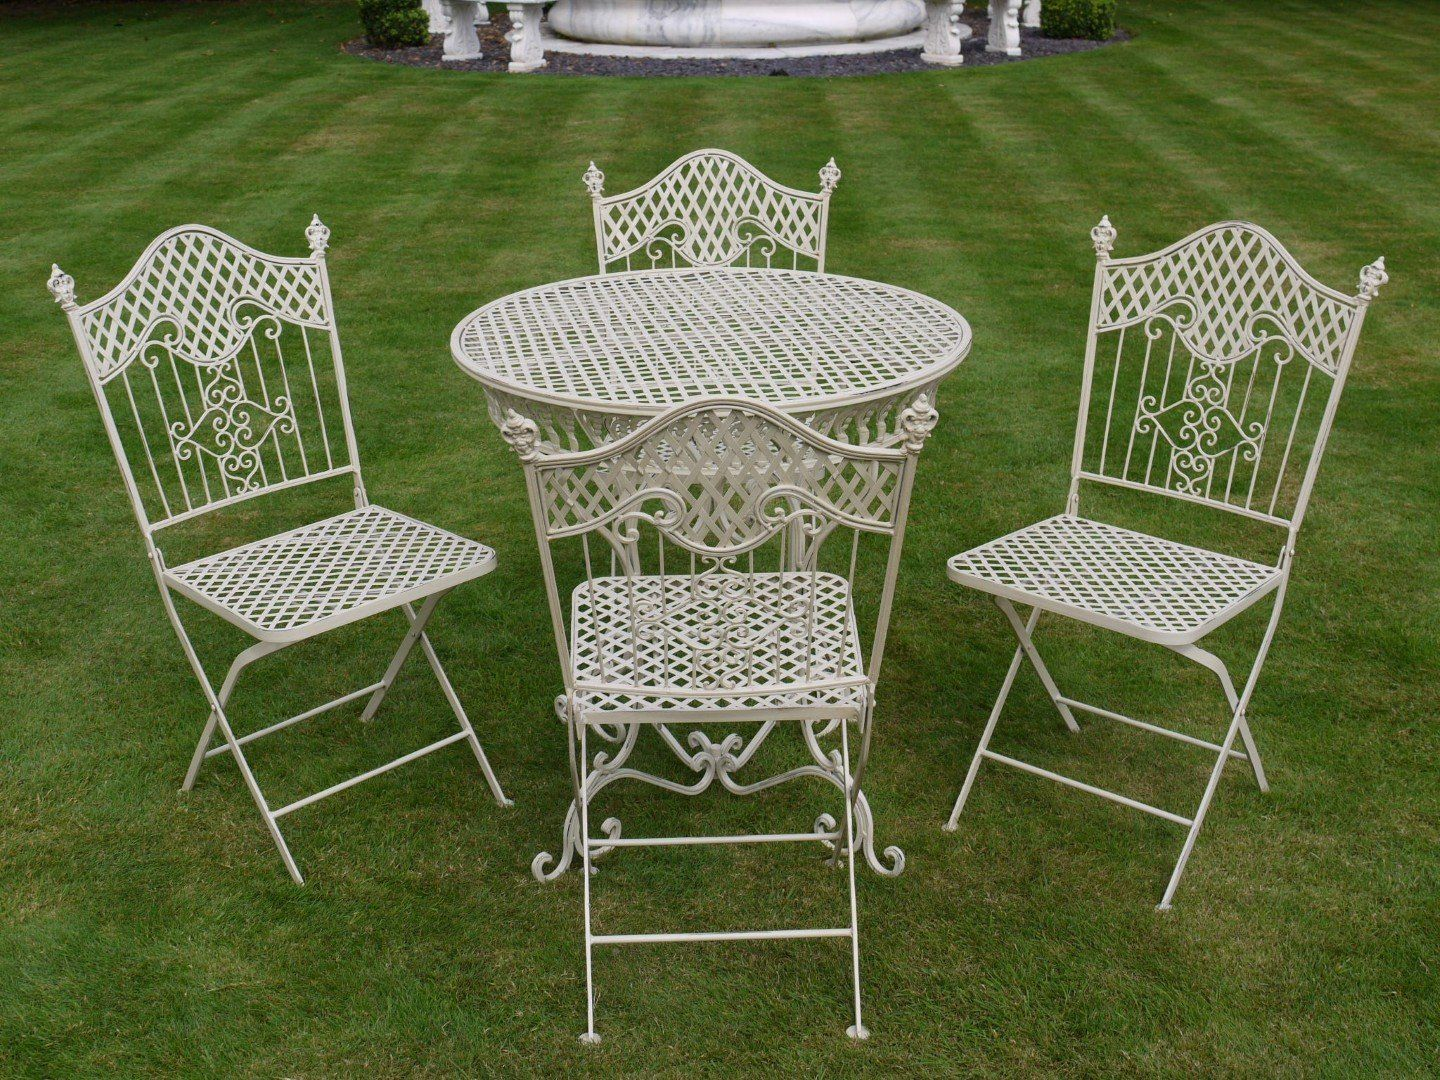 White Wrought Iron Kitchen Chairs Wicker Swivel Chair Uk French Ornate Cream Metal Garden Table And